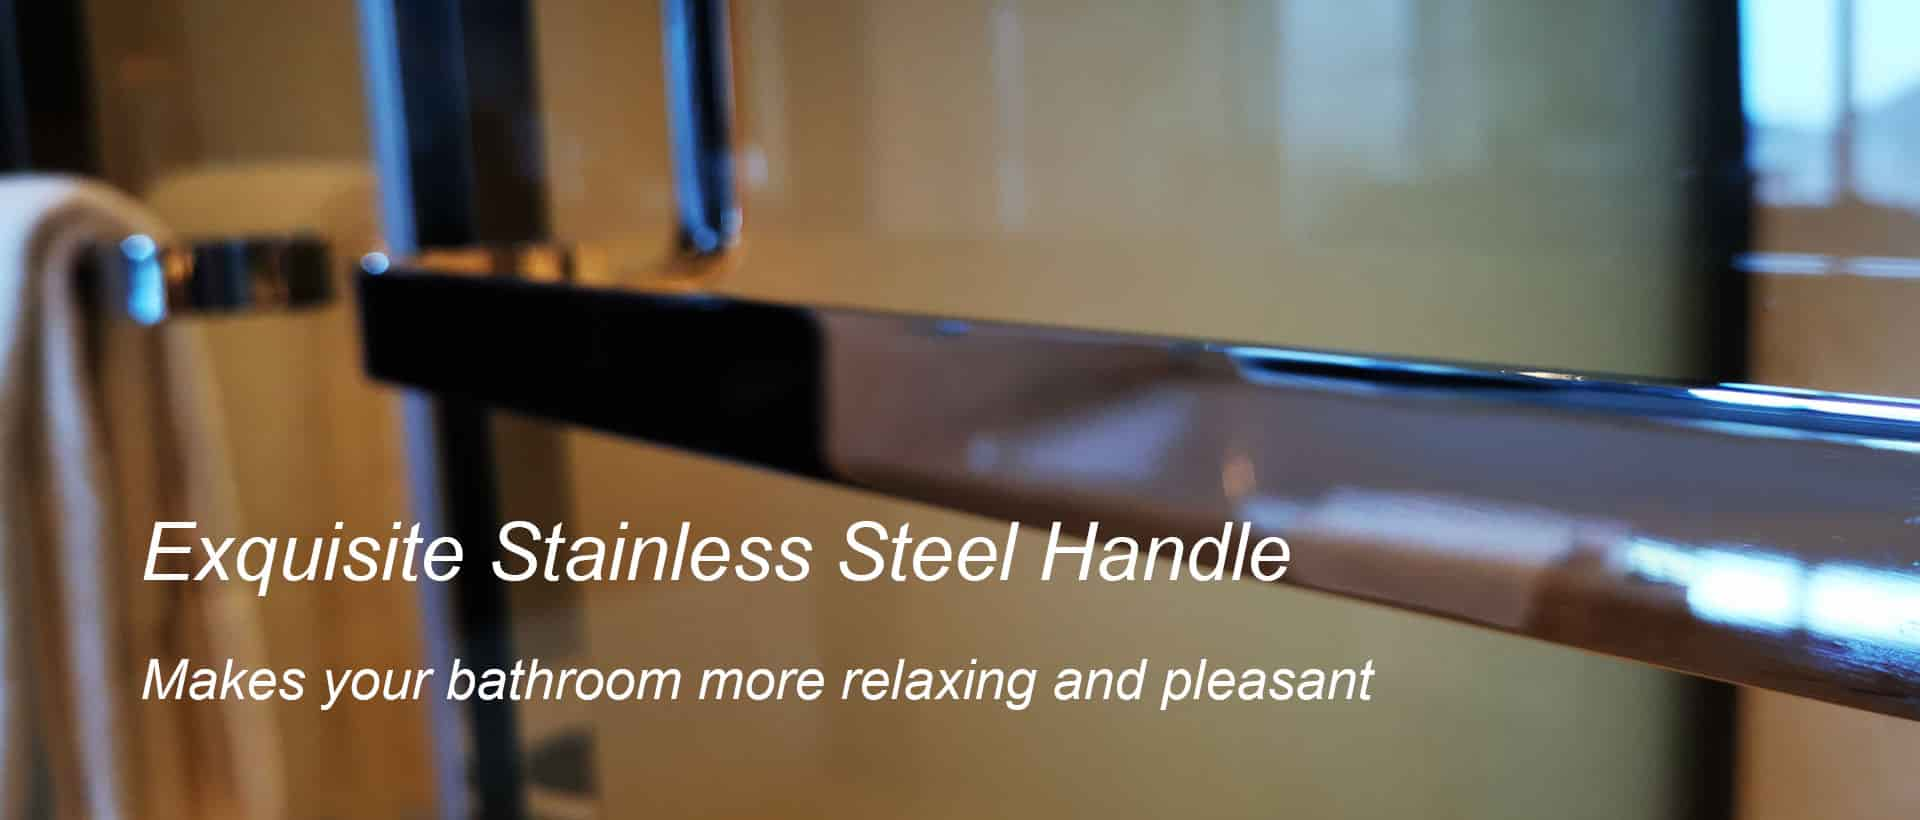 Exquisite Stainless Steel Handle